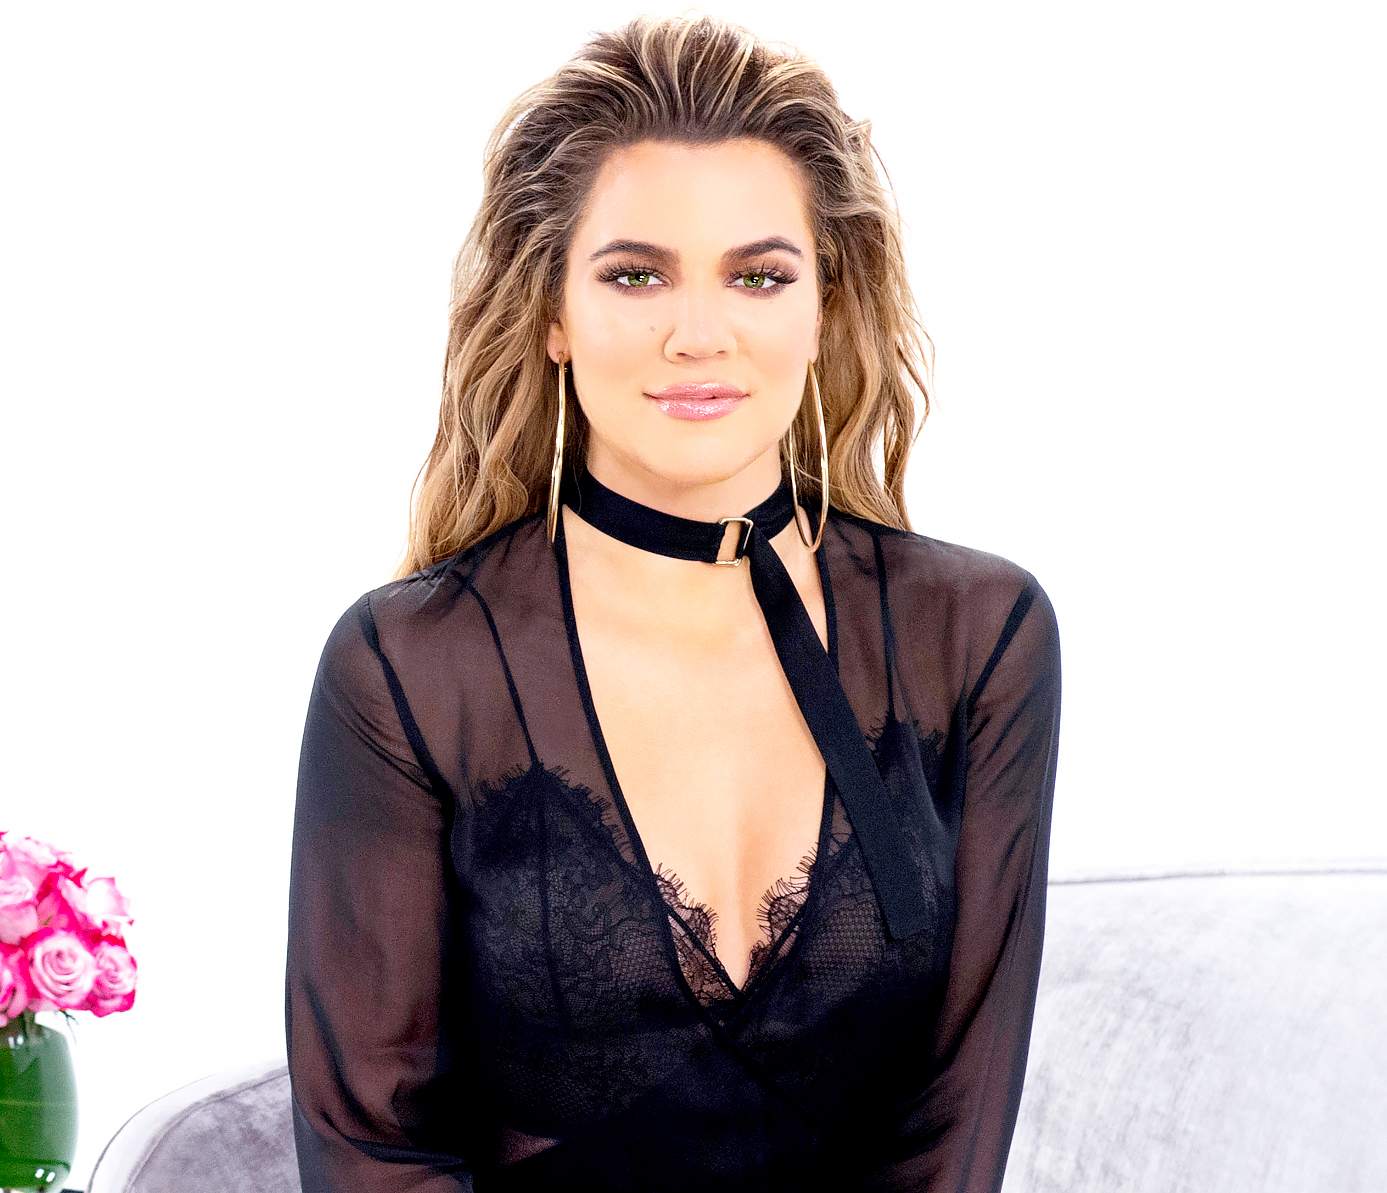 Khloe Kardashian's Six Month Pregnancy Photo Is Legit the Cutest Thing Ever